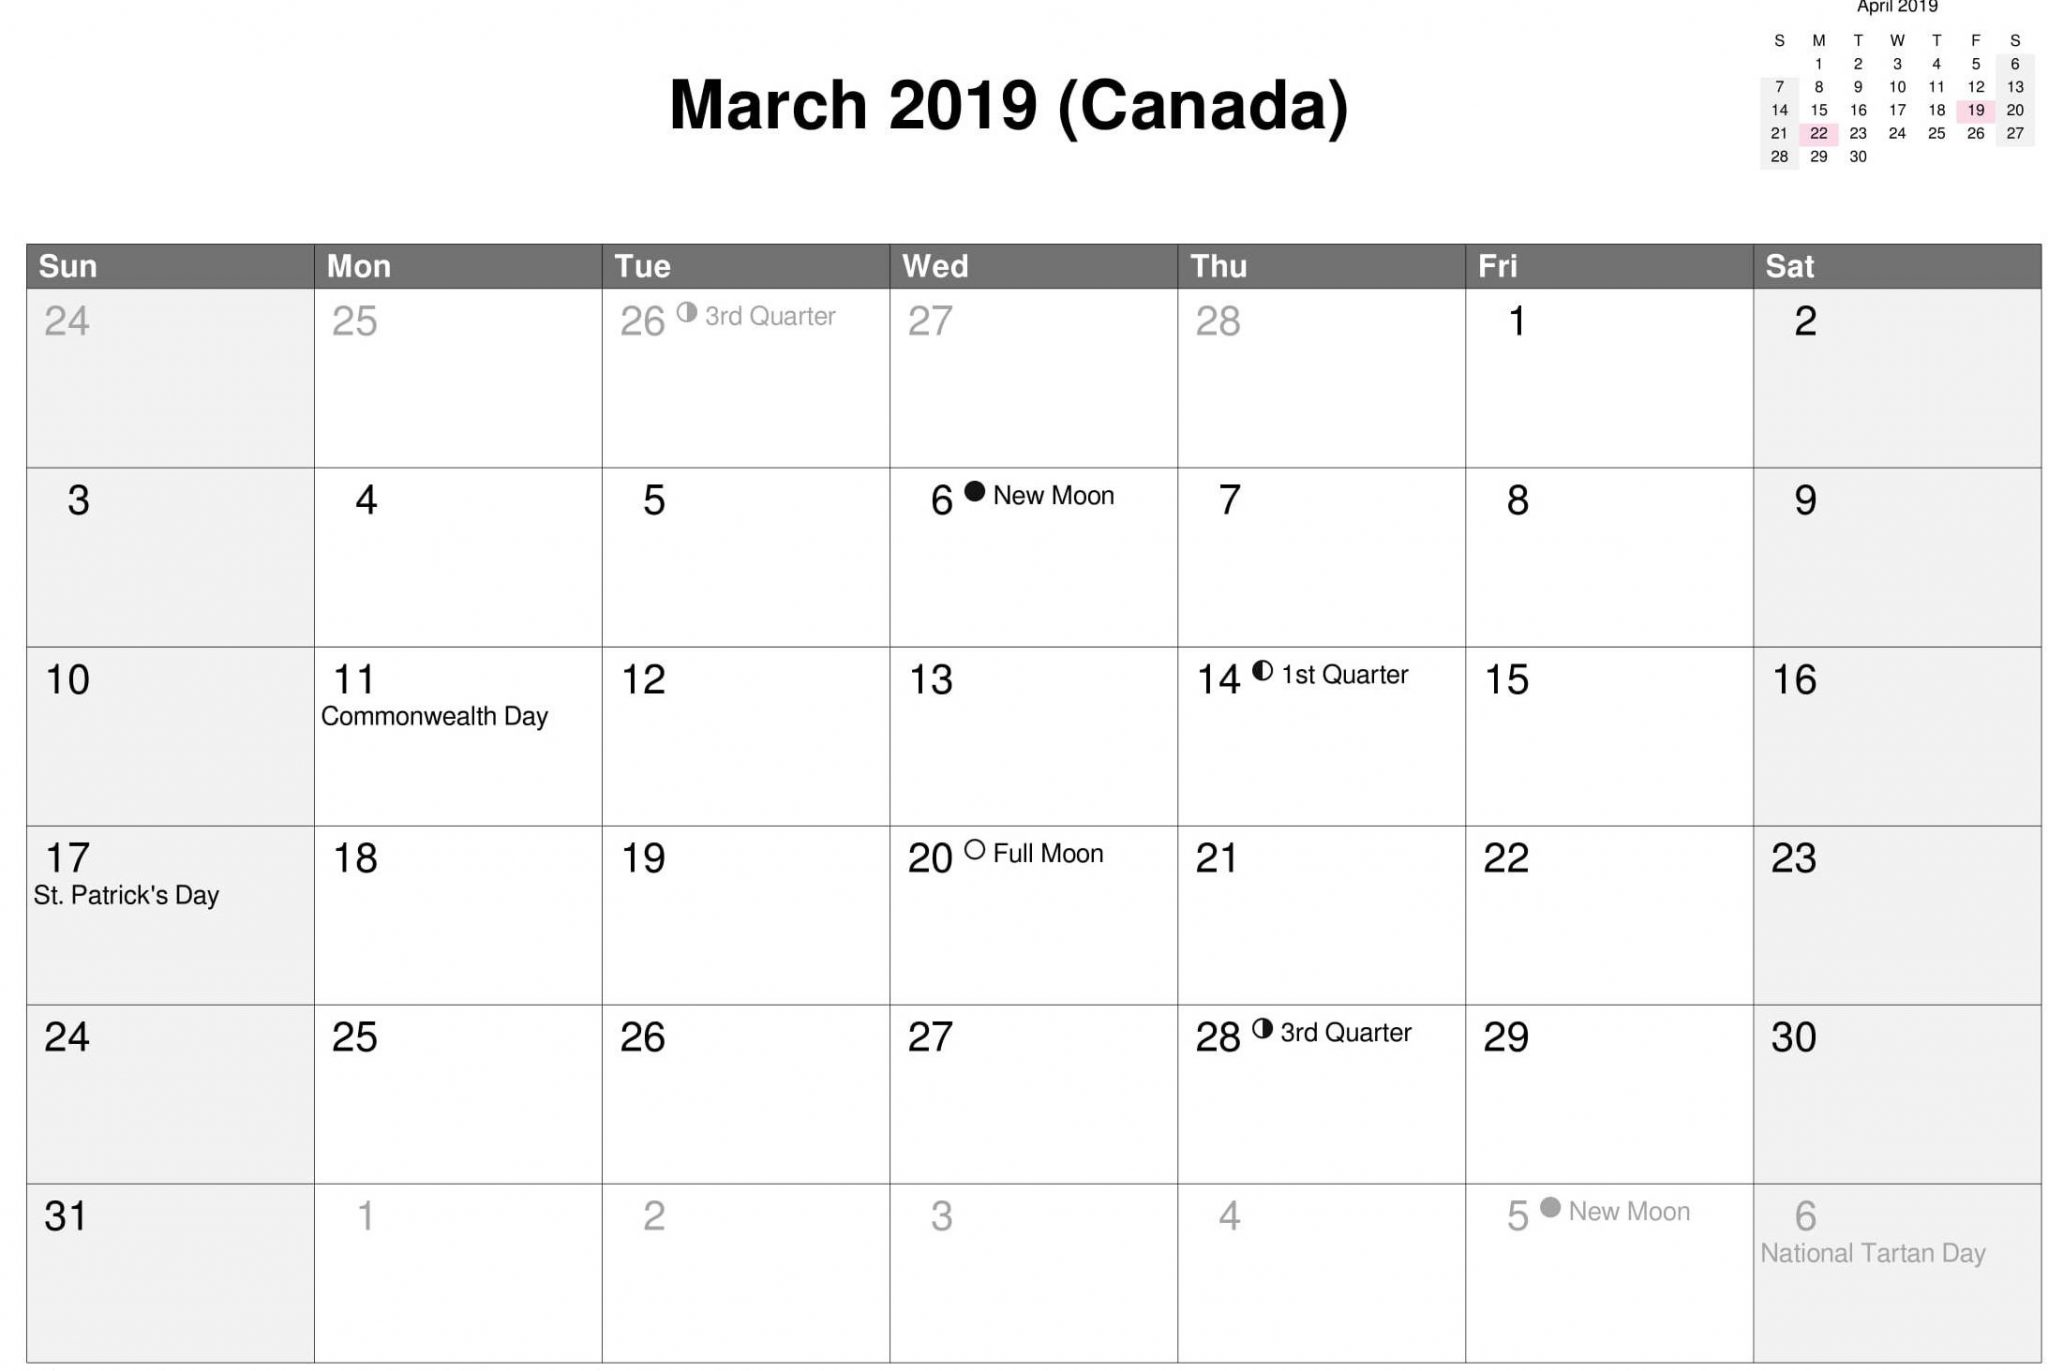 March 2019 Calendar Canada With Moon Phases